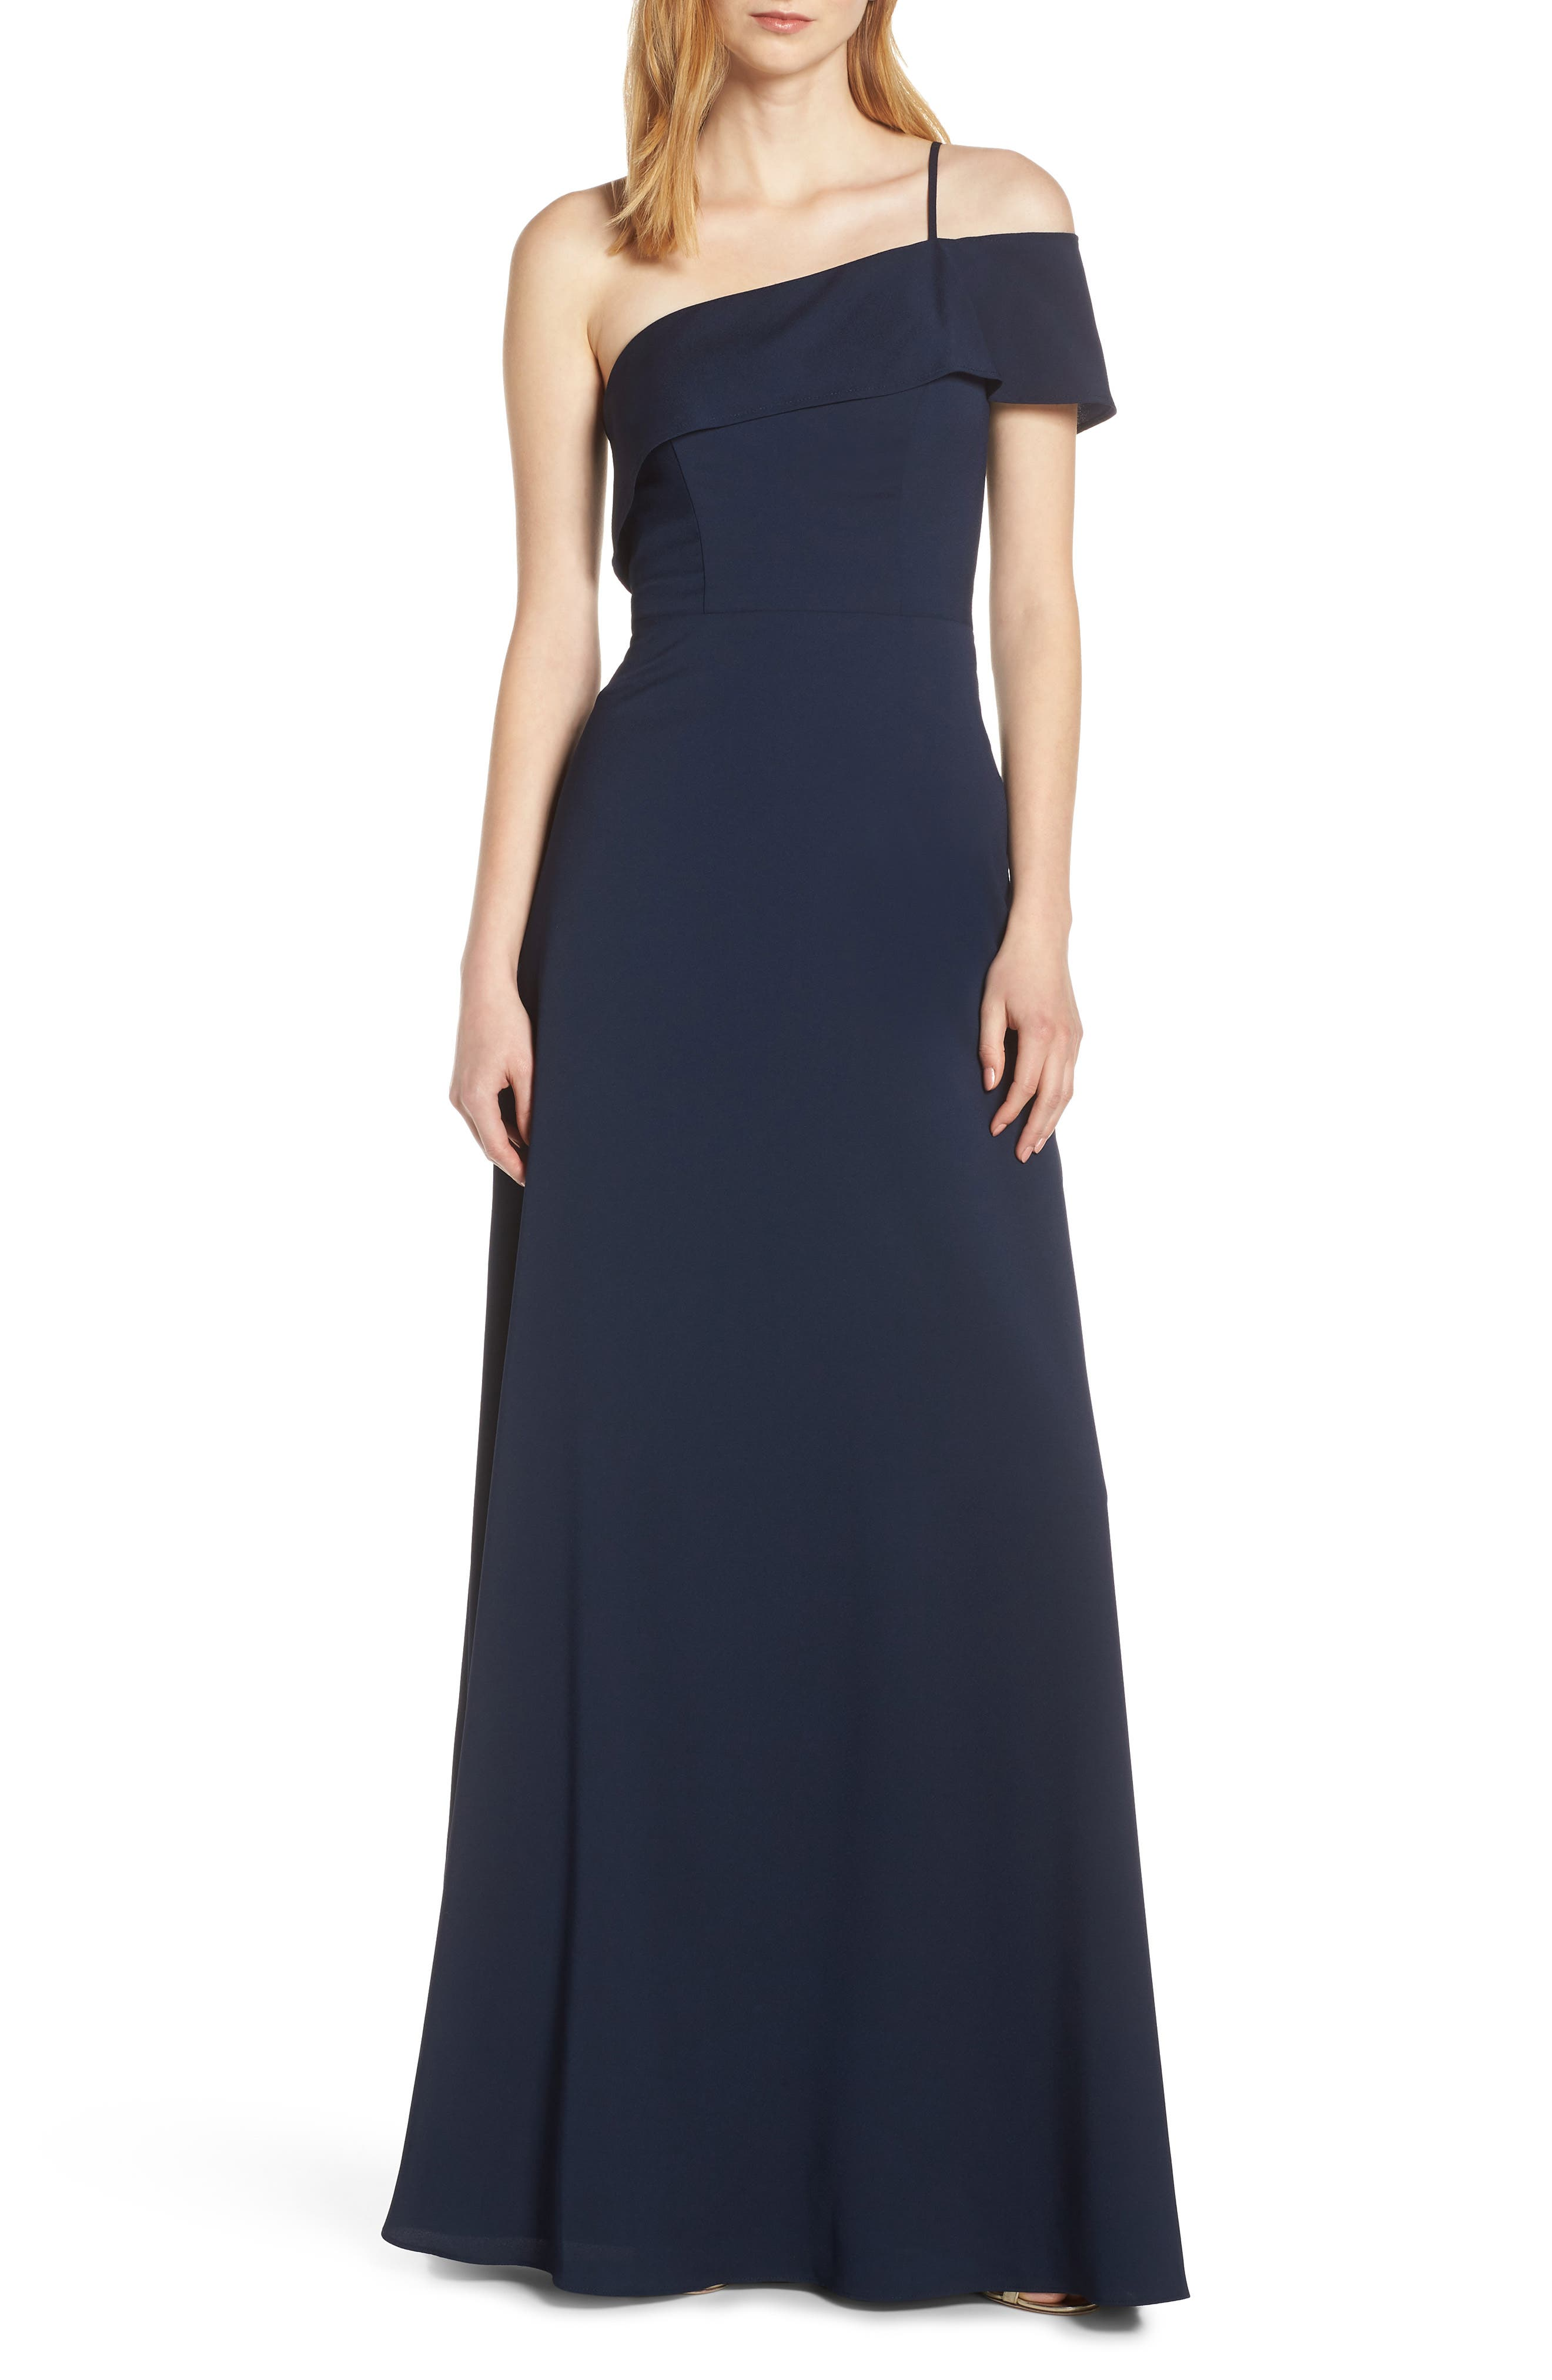 Hayley Paige Occasions One Cold Shoulder Crepe Evening Dress, Blue